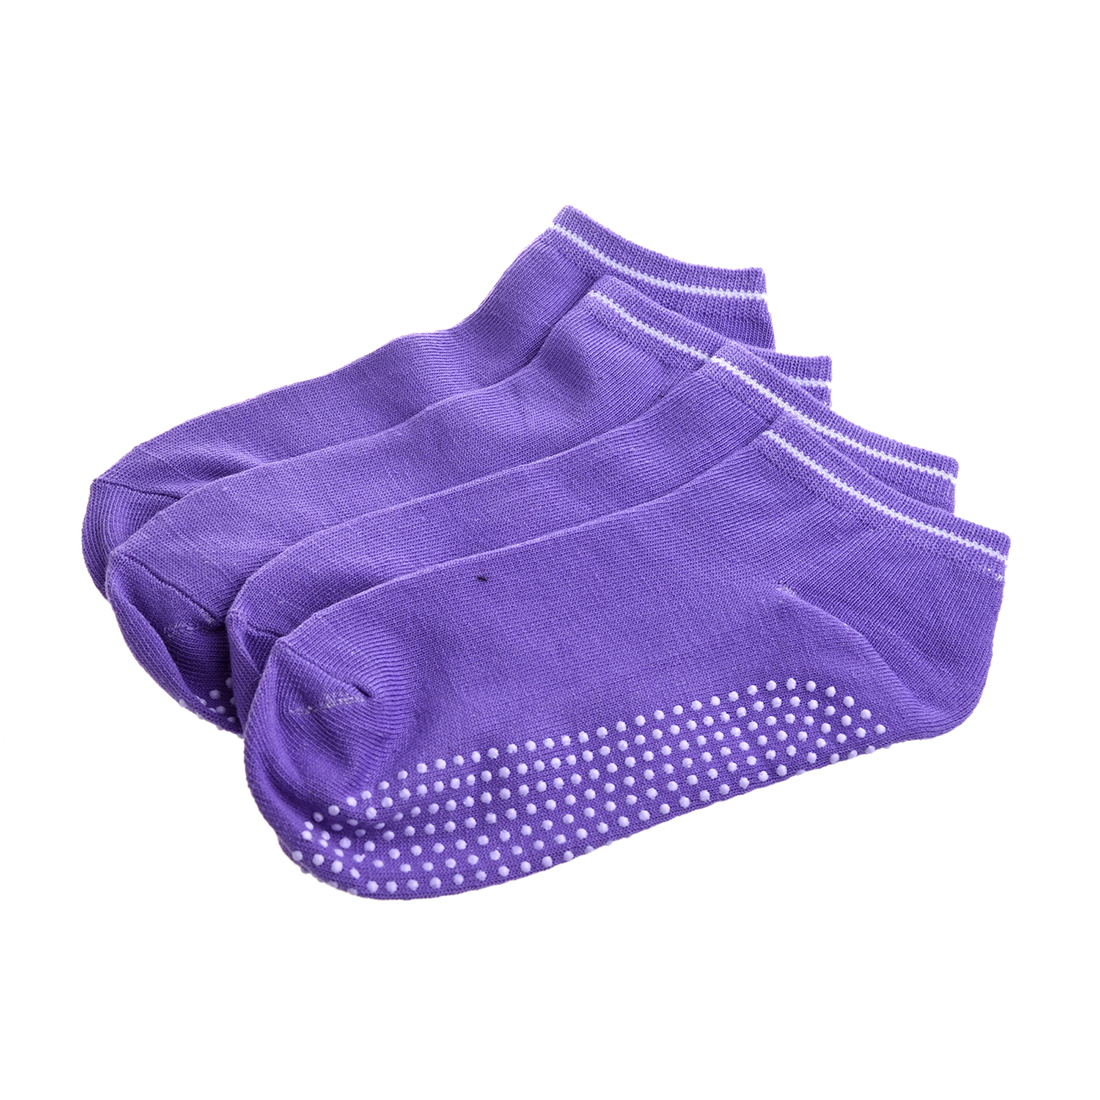 NEW 2 pairs Socks with non-slip massage Granules for women - Purple